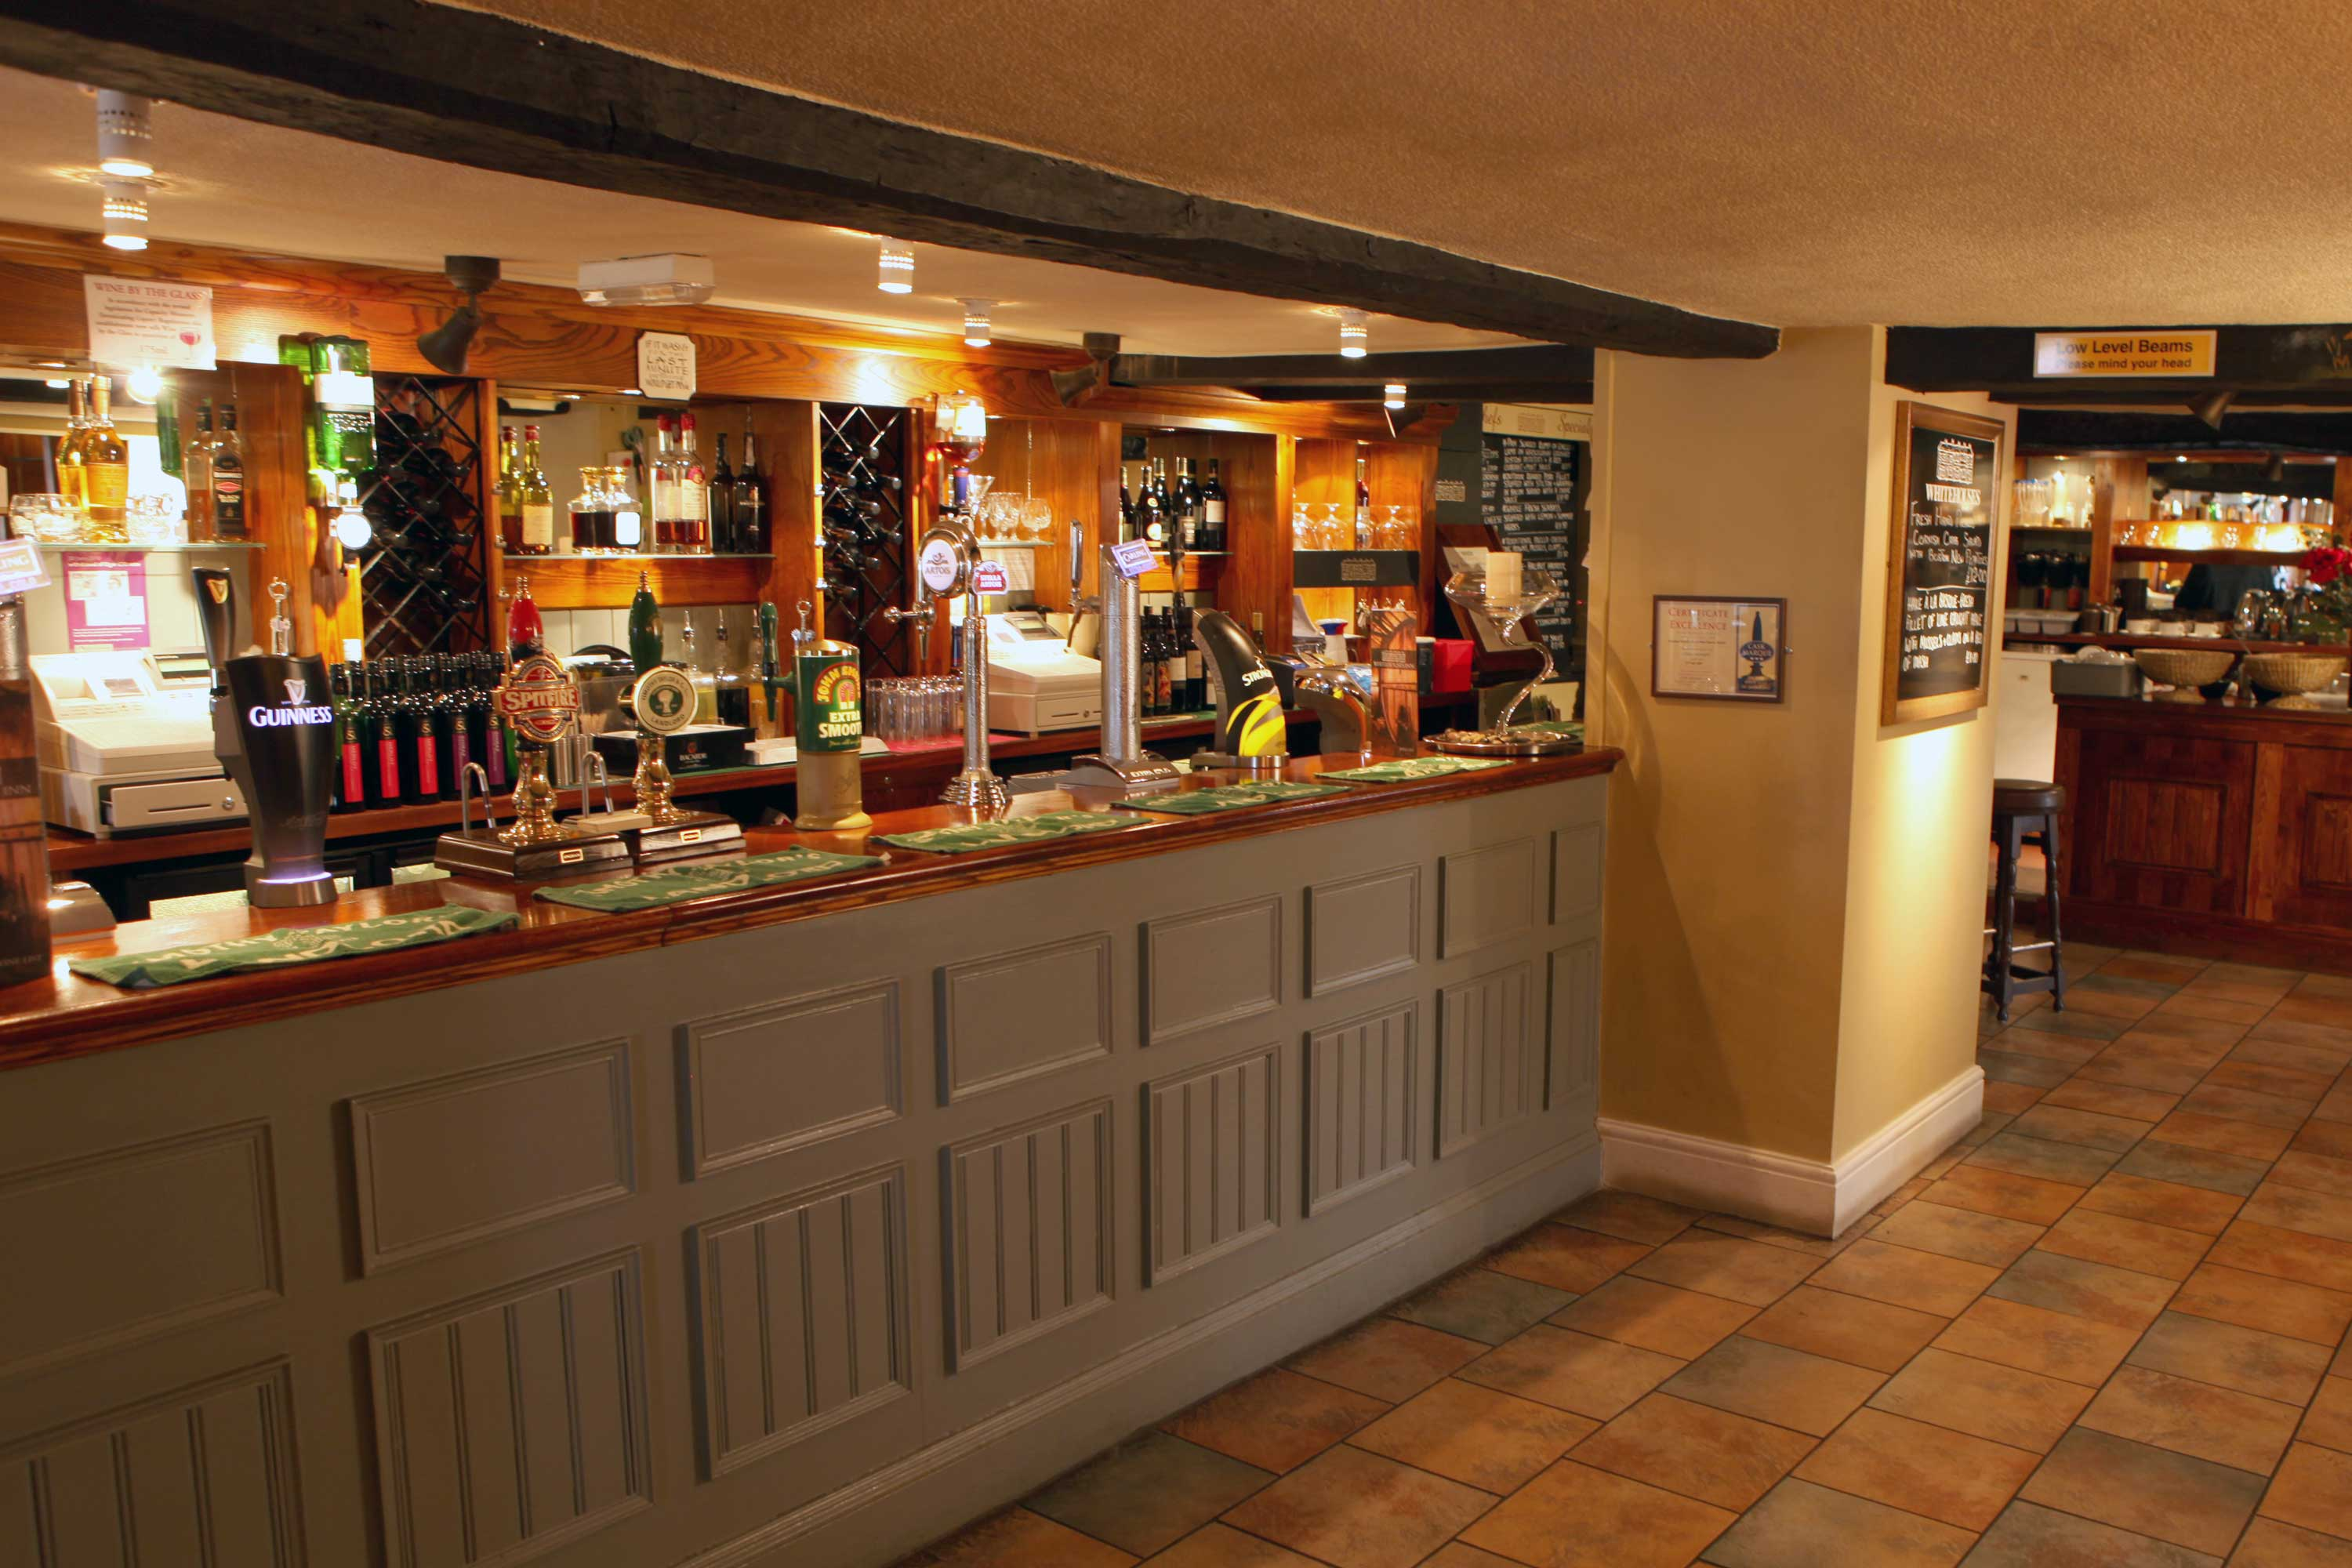 Traditional ales at Whitehouses Inn in Retford, Notts